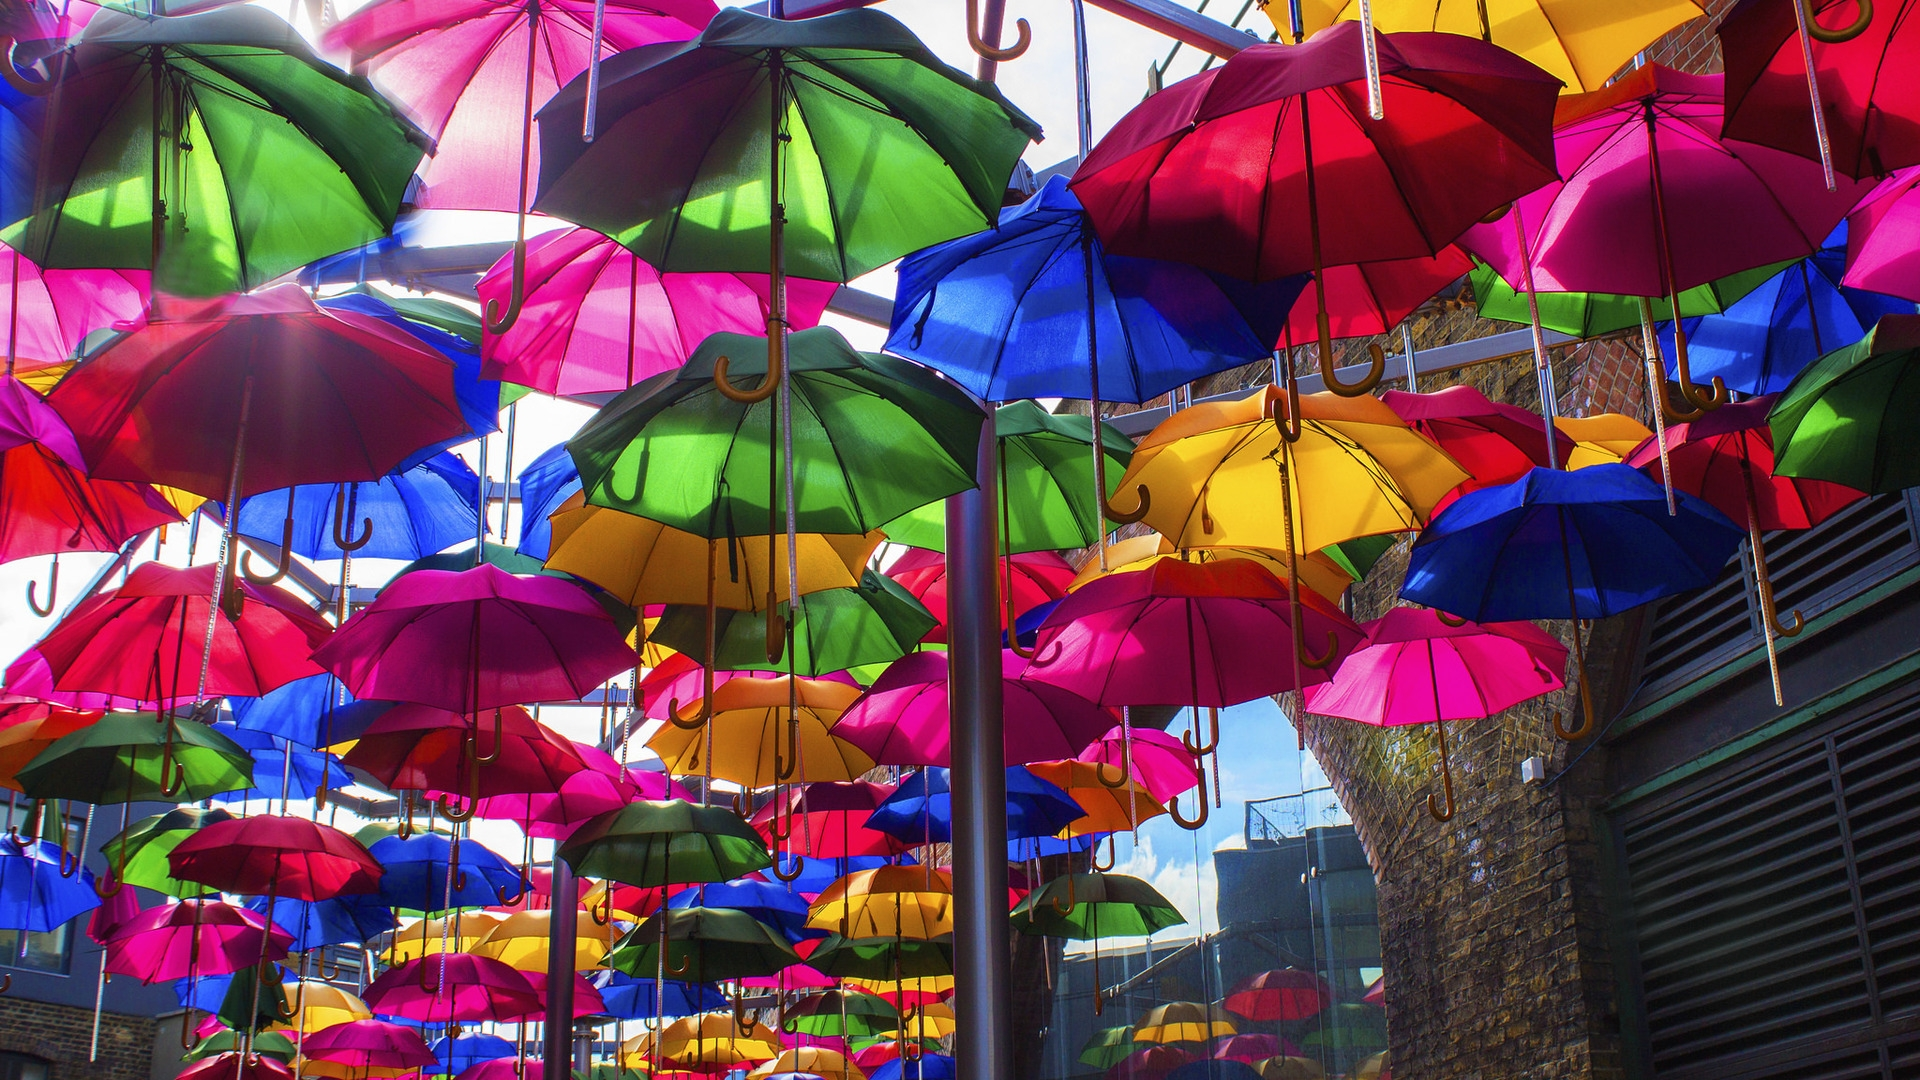 Opened Colorful Umbrellas for 1920 x 1080 HDTV 1080p resolution